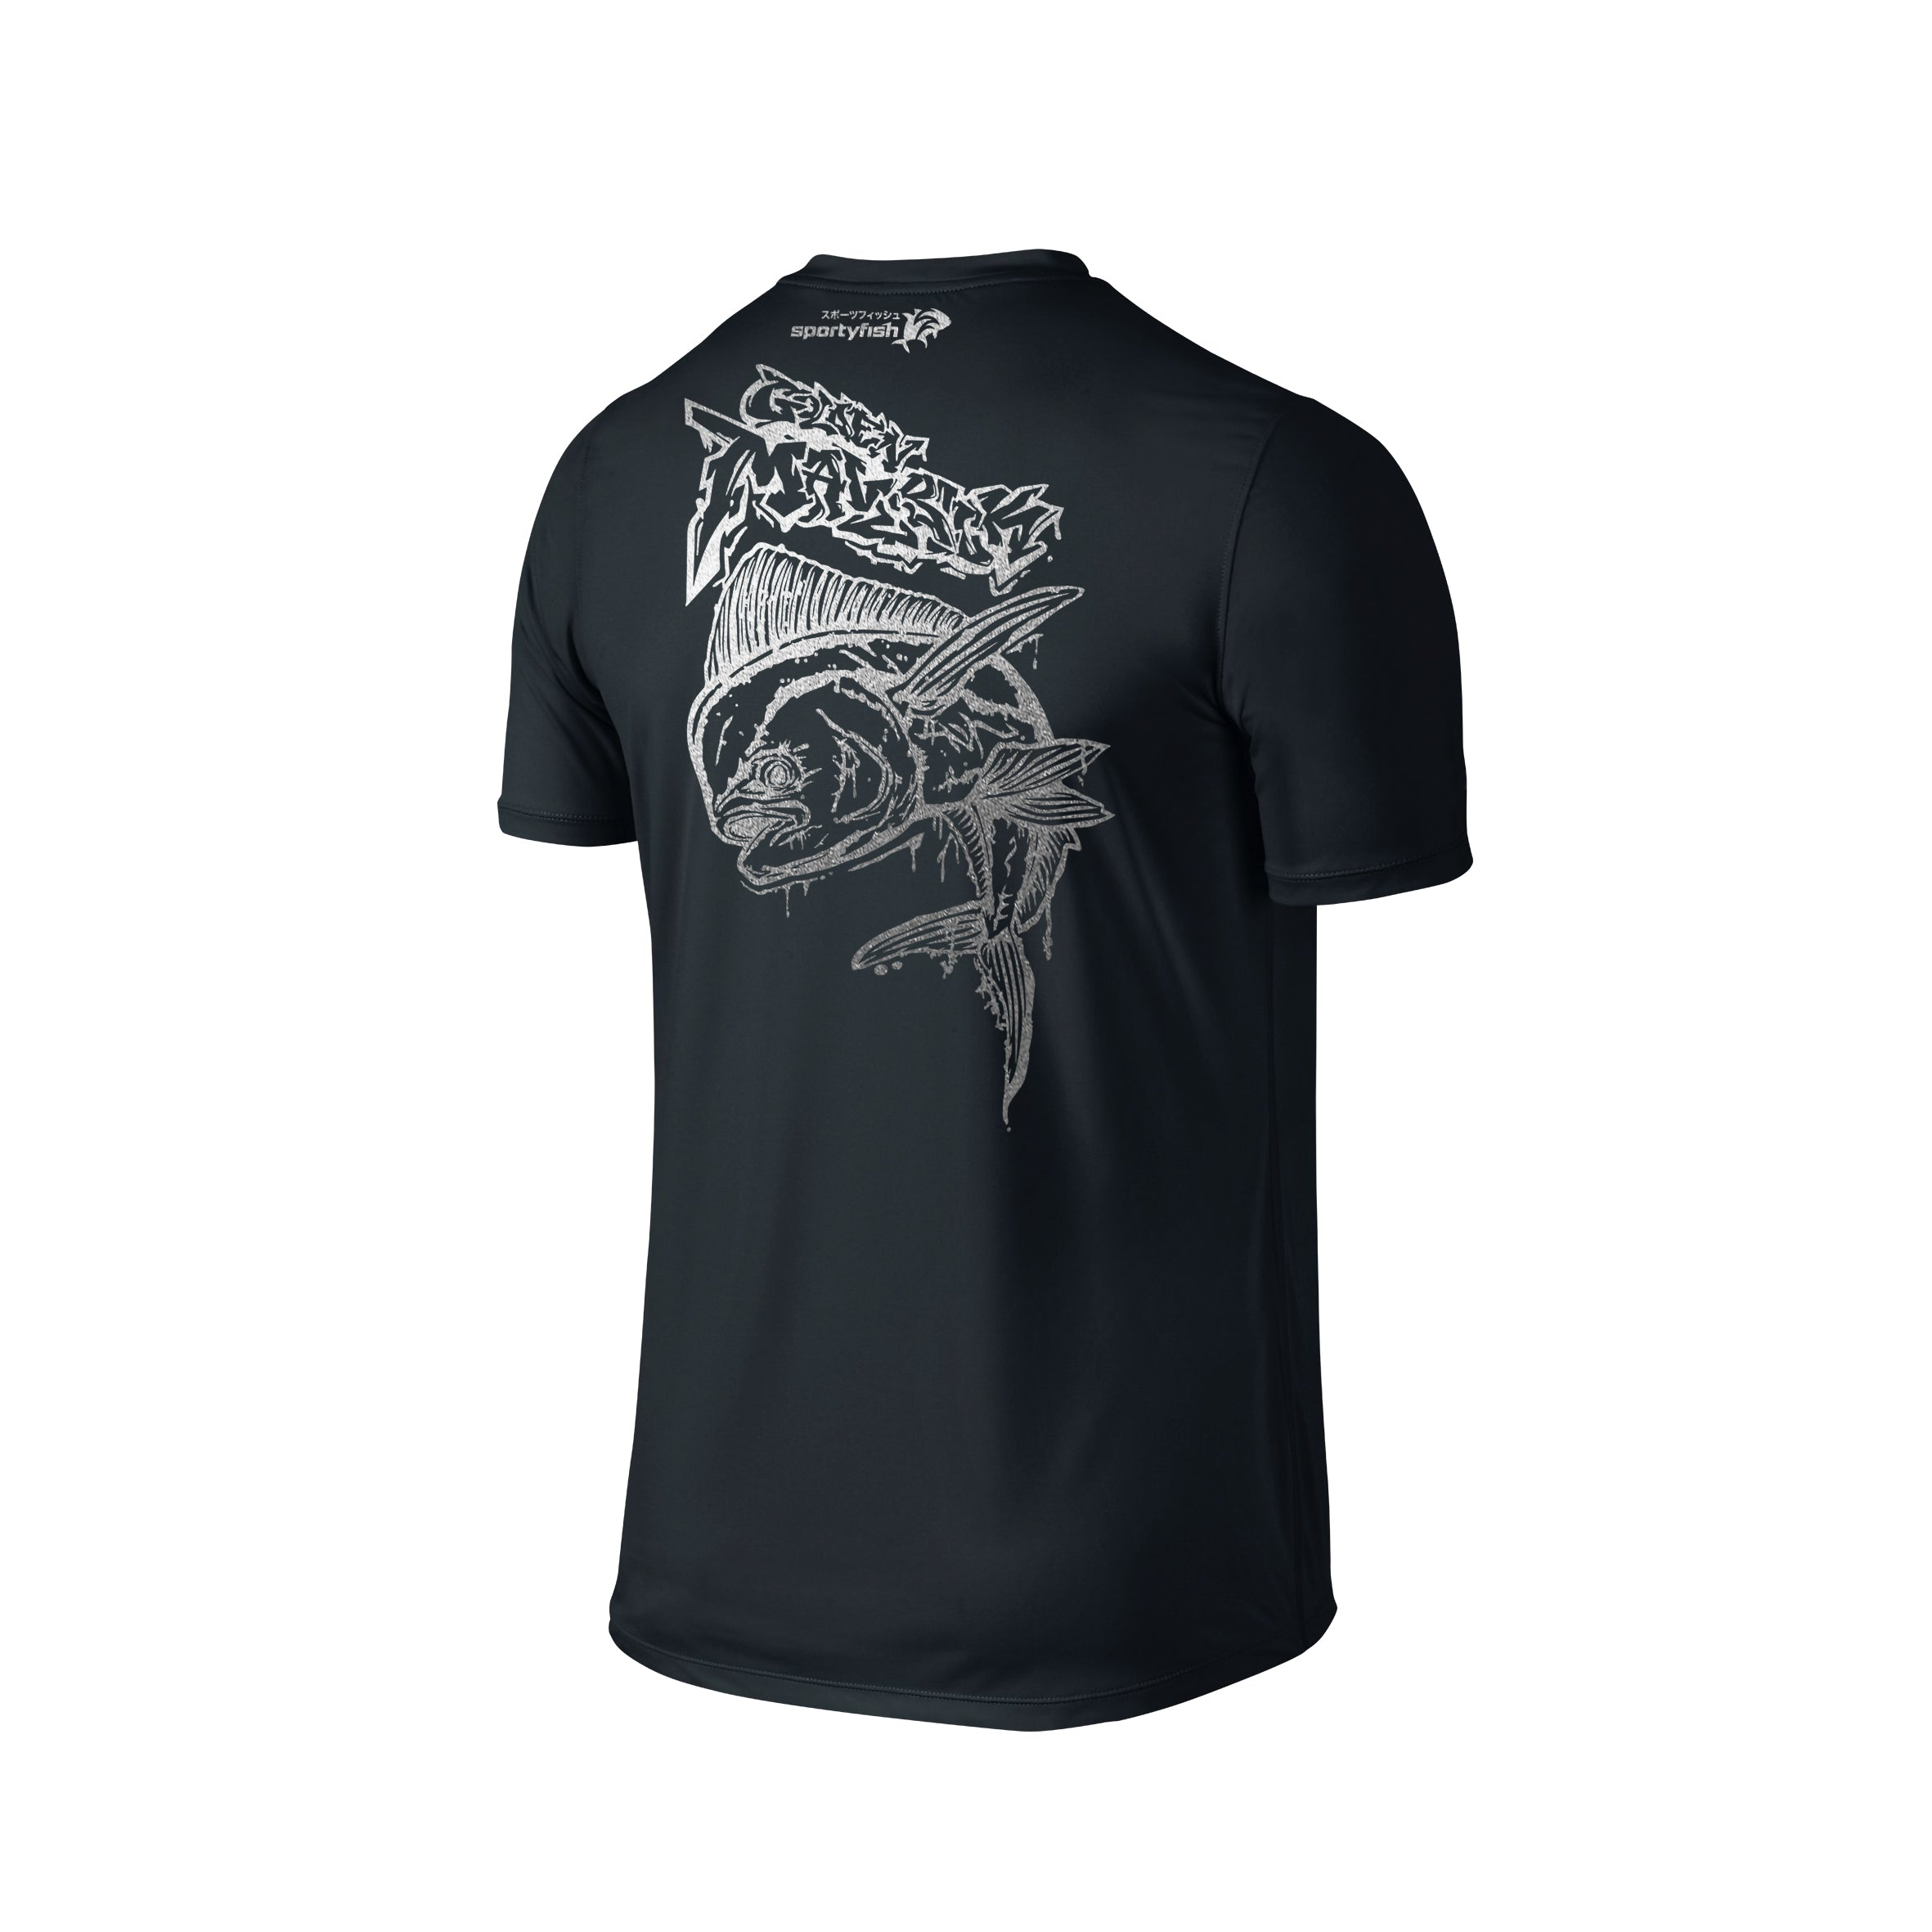 Wildstyle Graffiti Series Black T-shirt(back view)Silver: Mahi-mahi